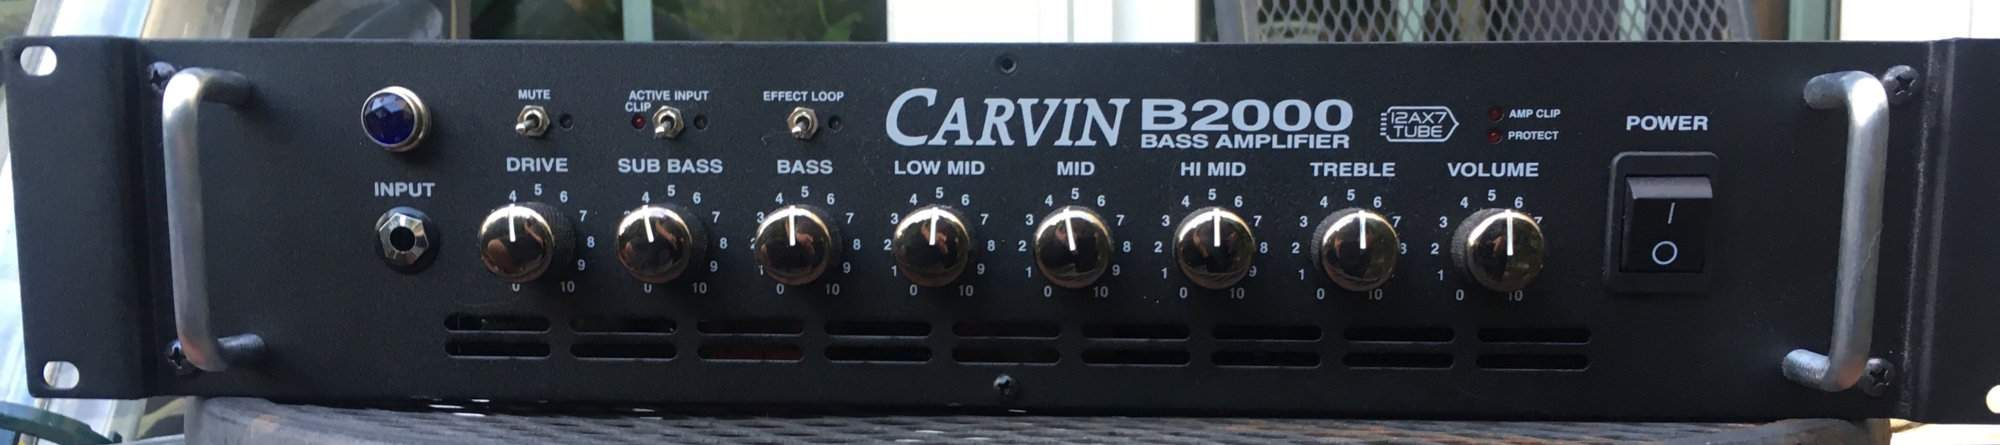 Carvin Amp front.